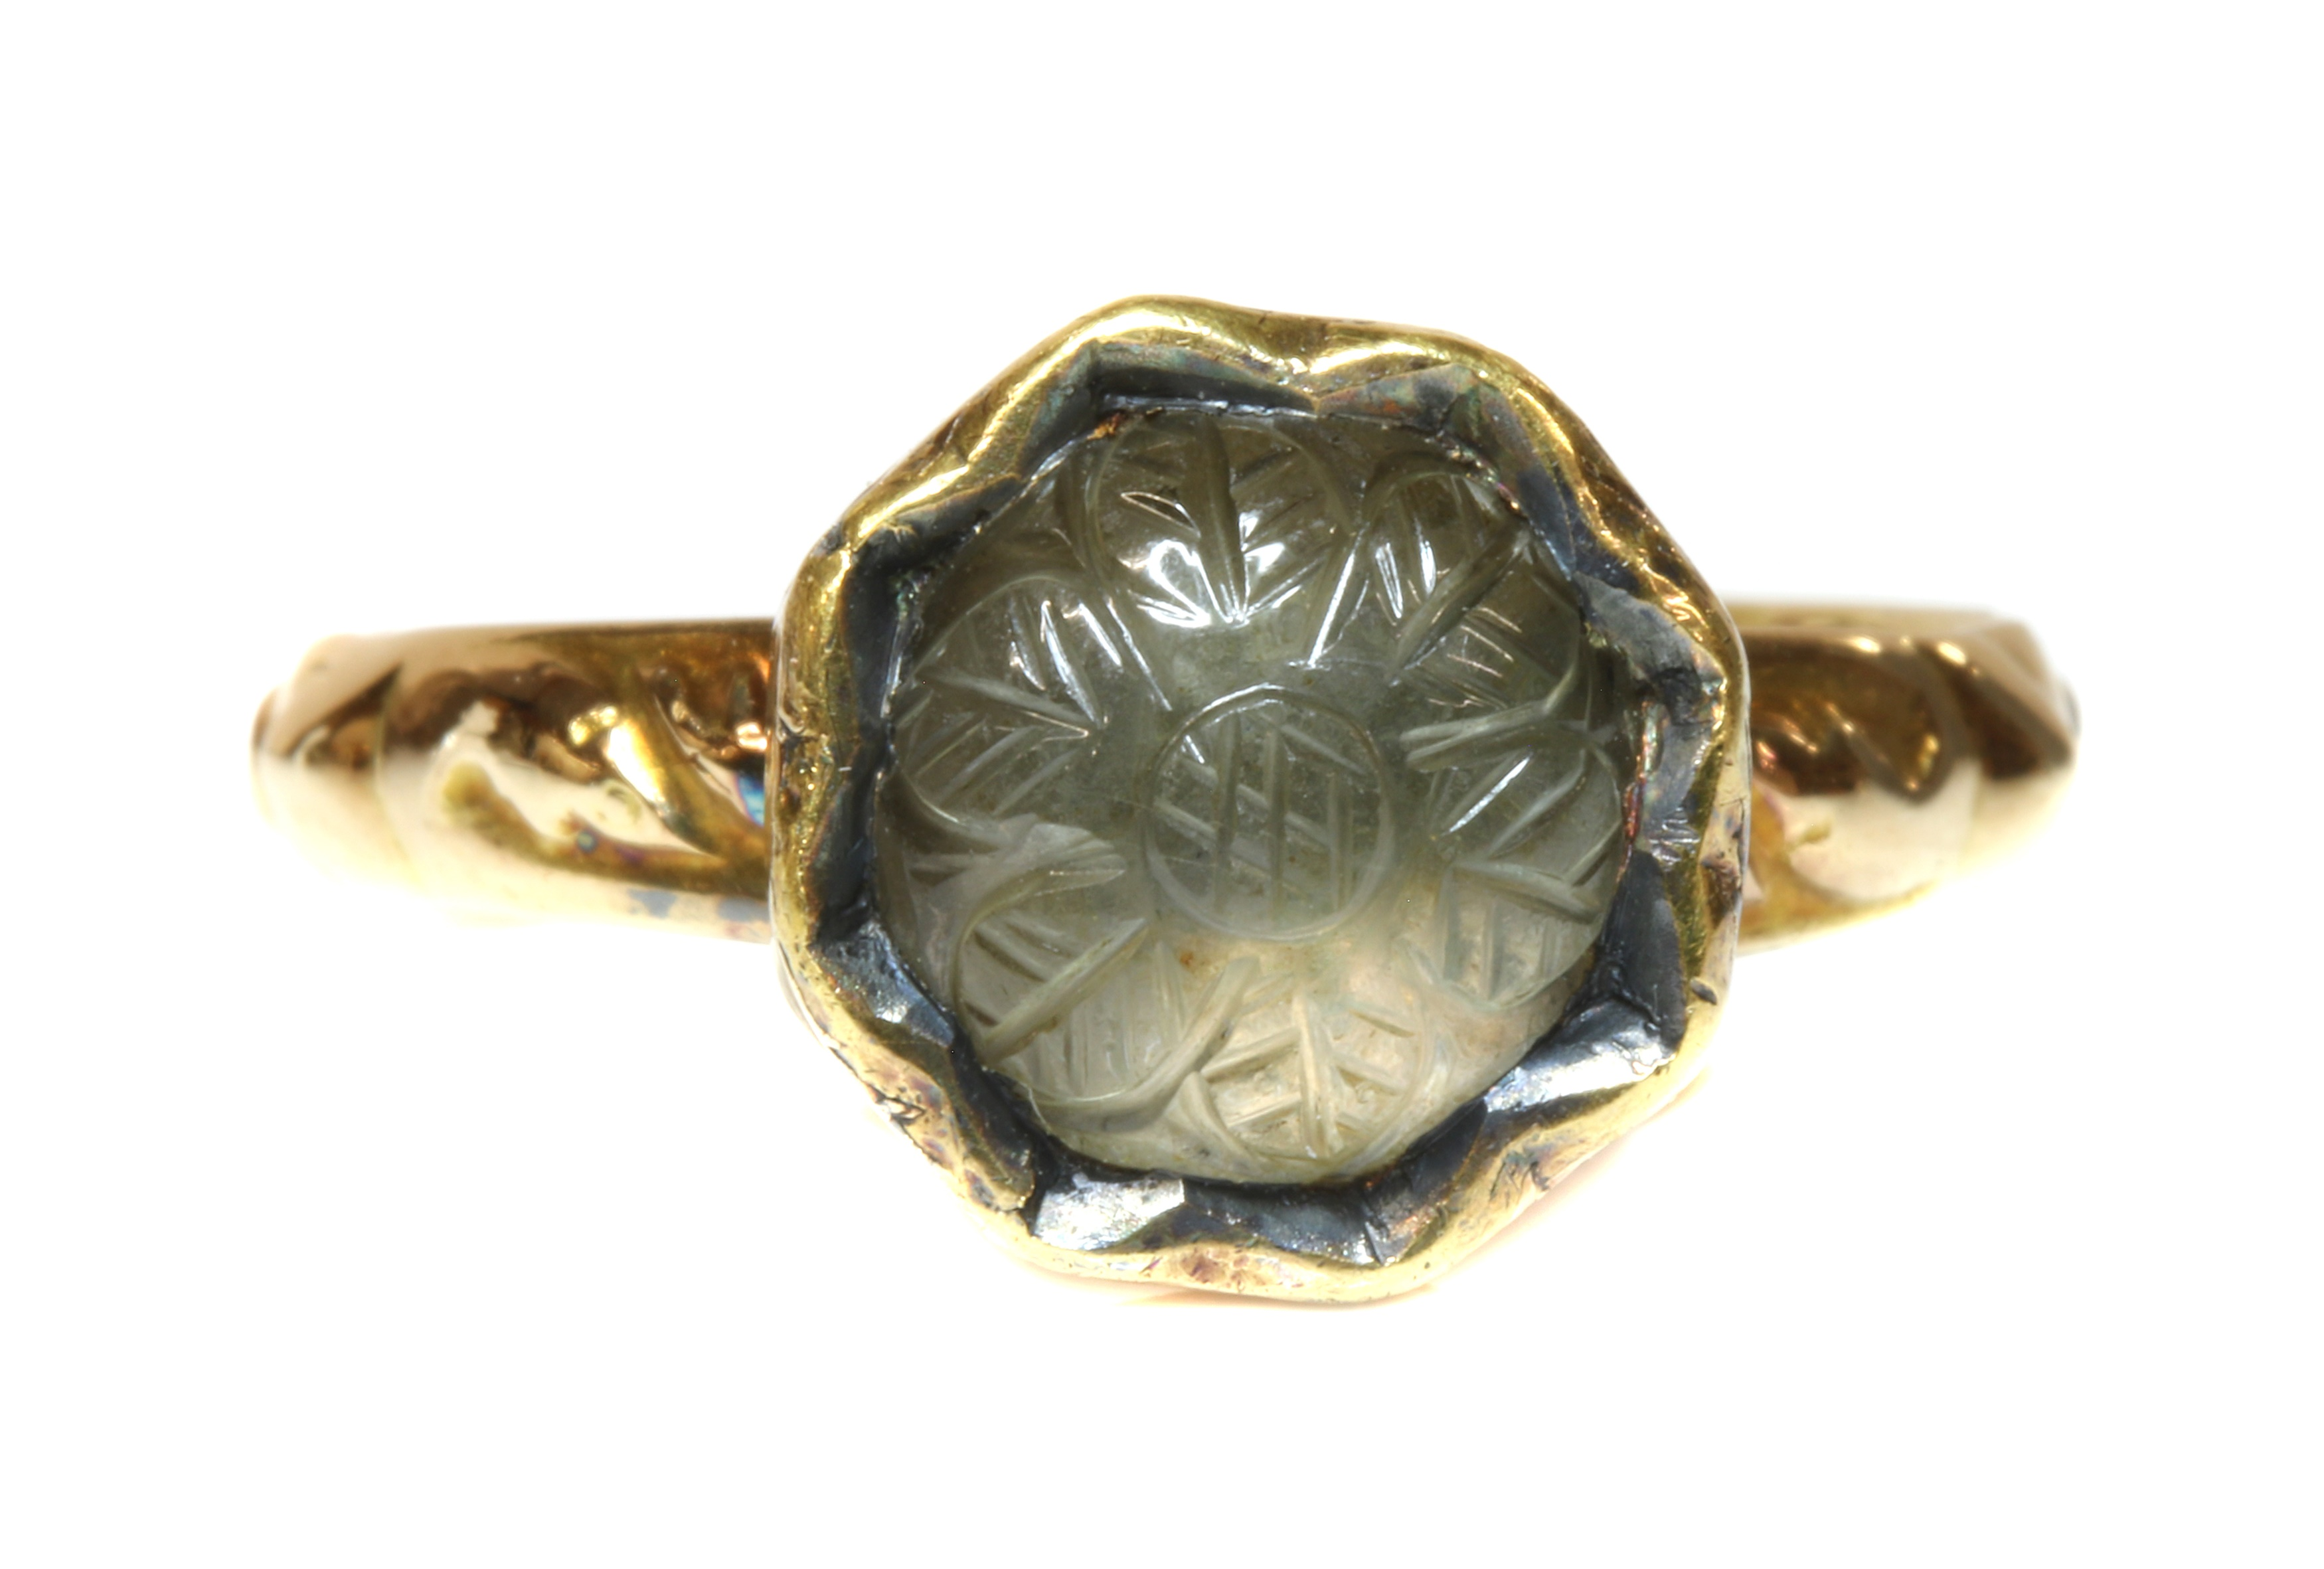 Fine Jewellery and Watches - Live Online